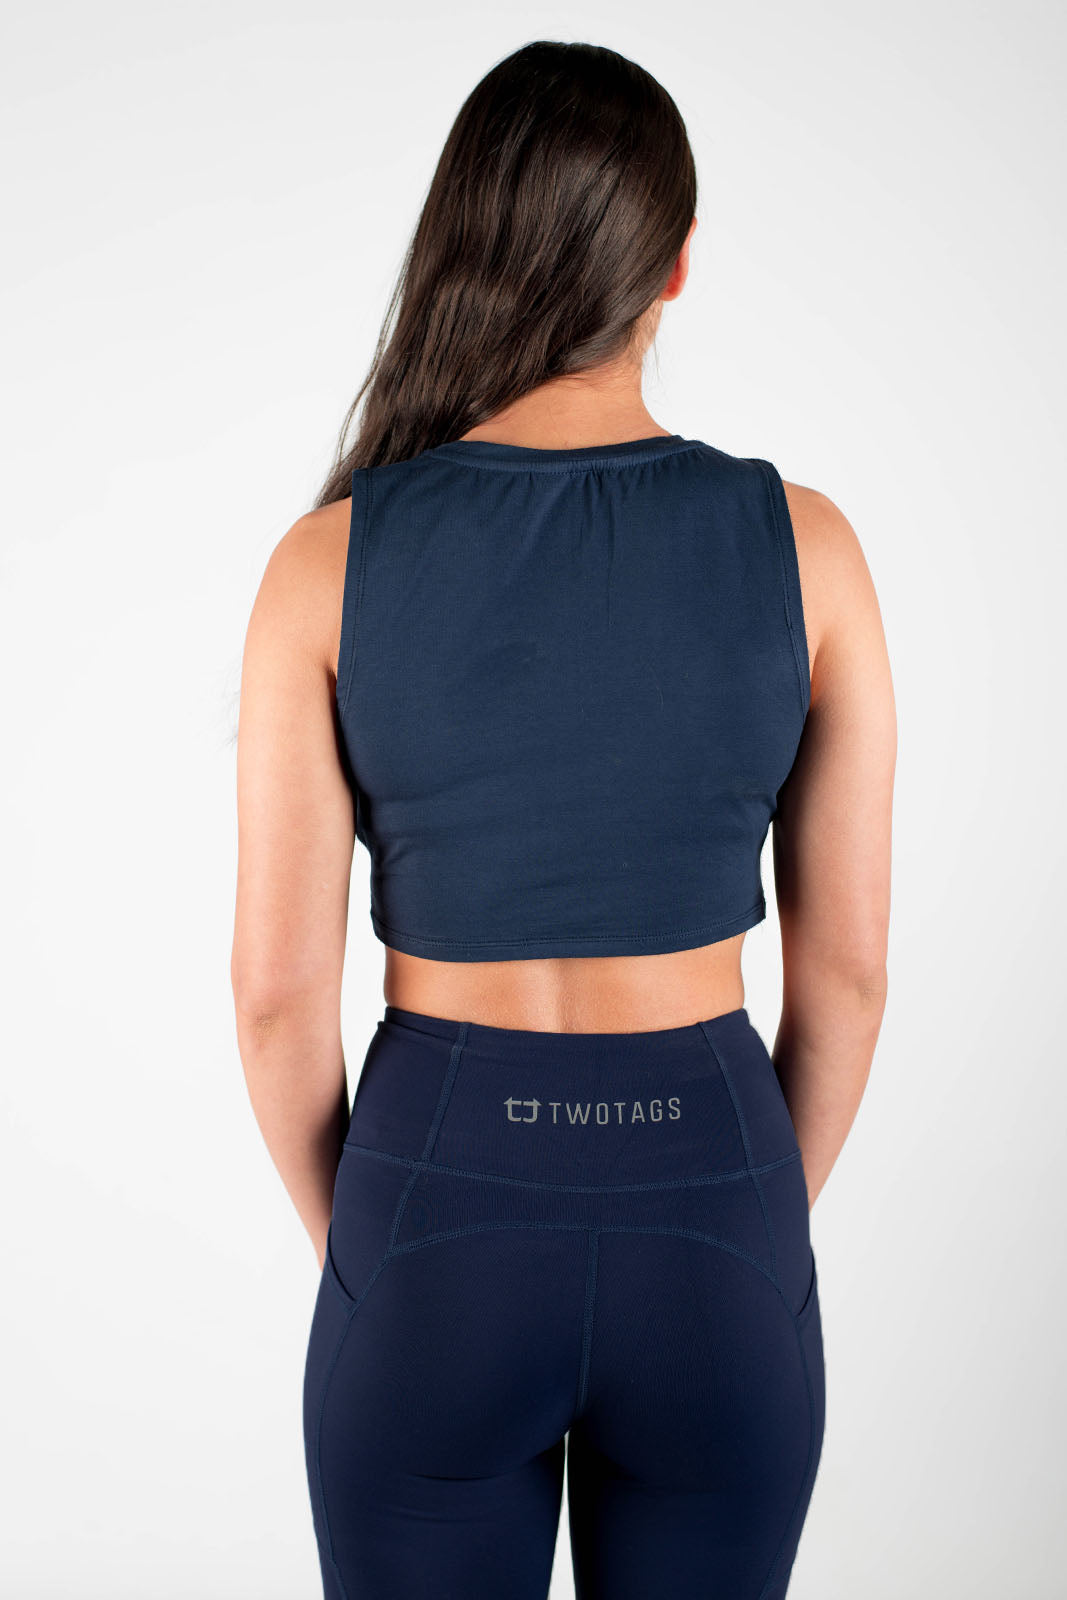 Twotags Ladies Wrap Cropped Tank – Navy Blue